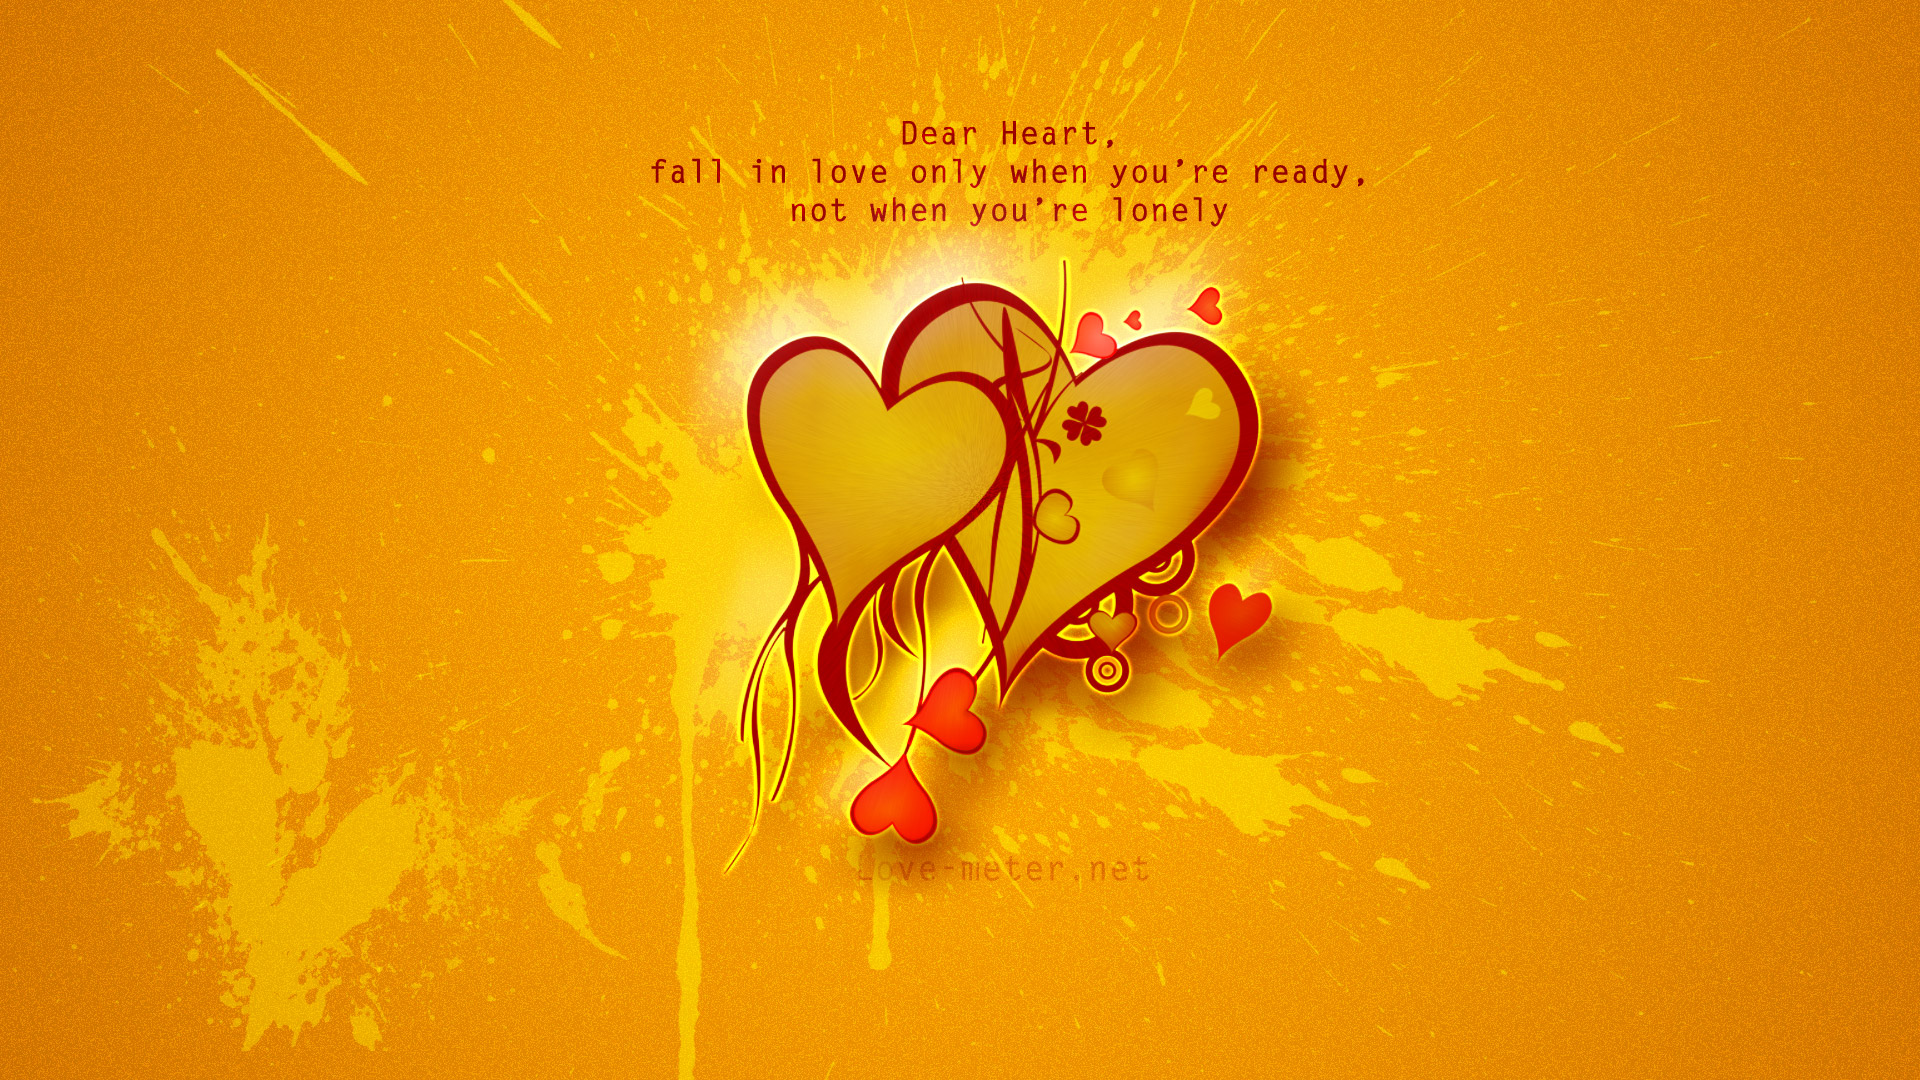 Wallpaper Fall In Love cartoon : Fall In Love Wallpaper Quotes #4260 Wallpaper WallDiskPaper